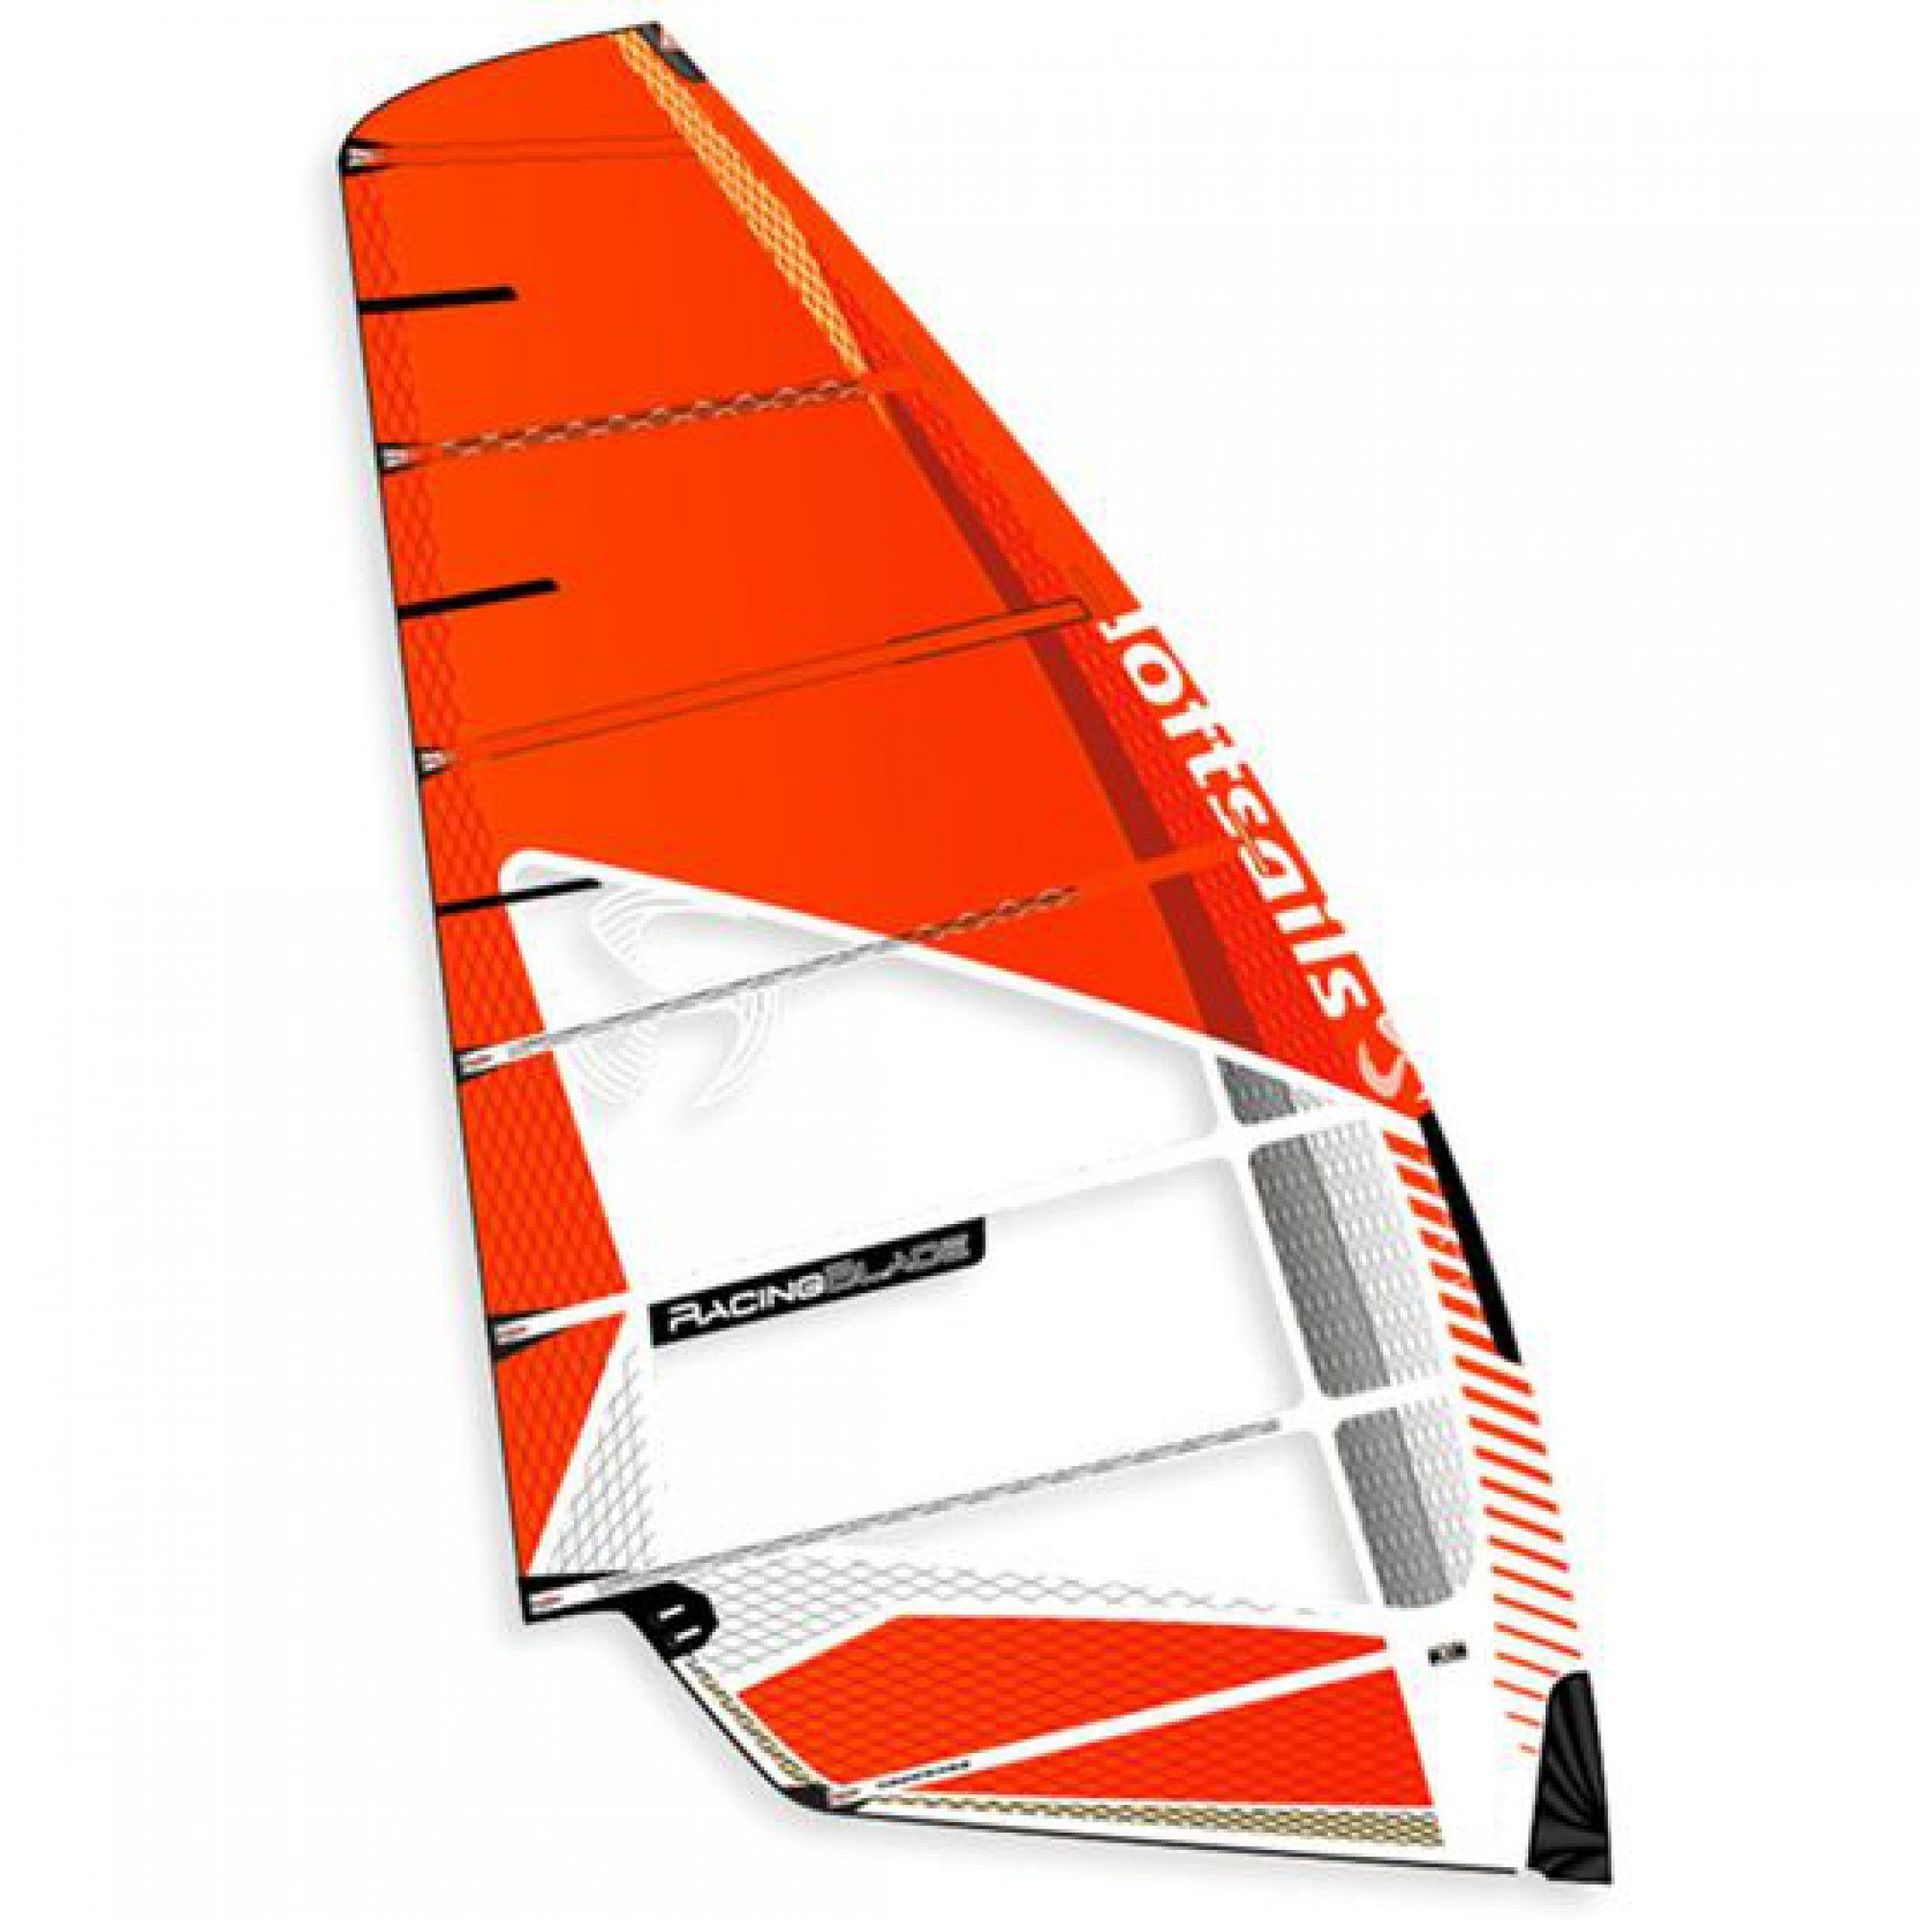 ŻAGIEL LOFTSAILS RACINGBLADE 2018 ORANGE